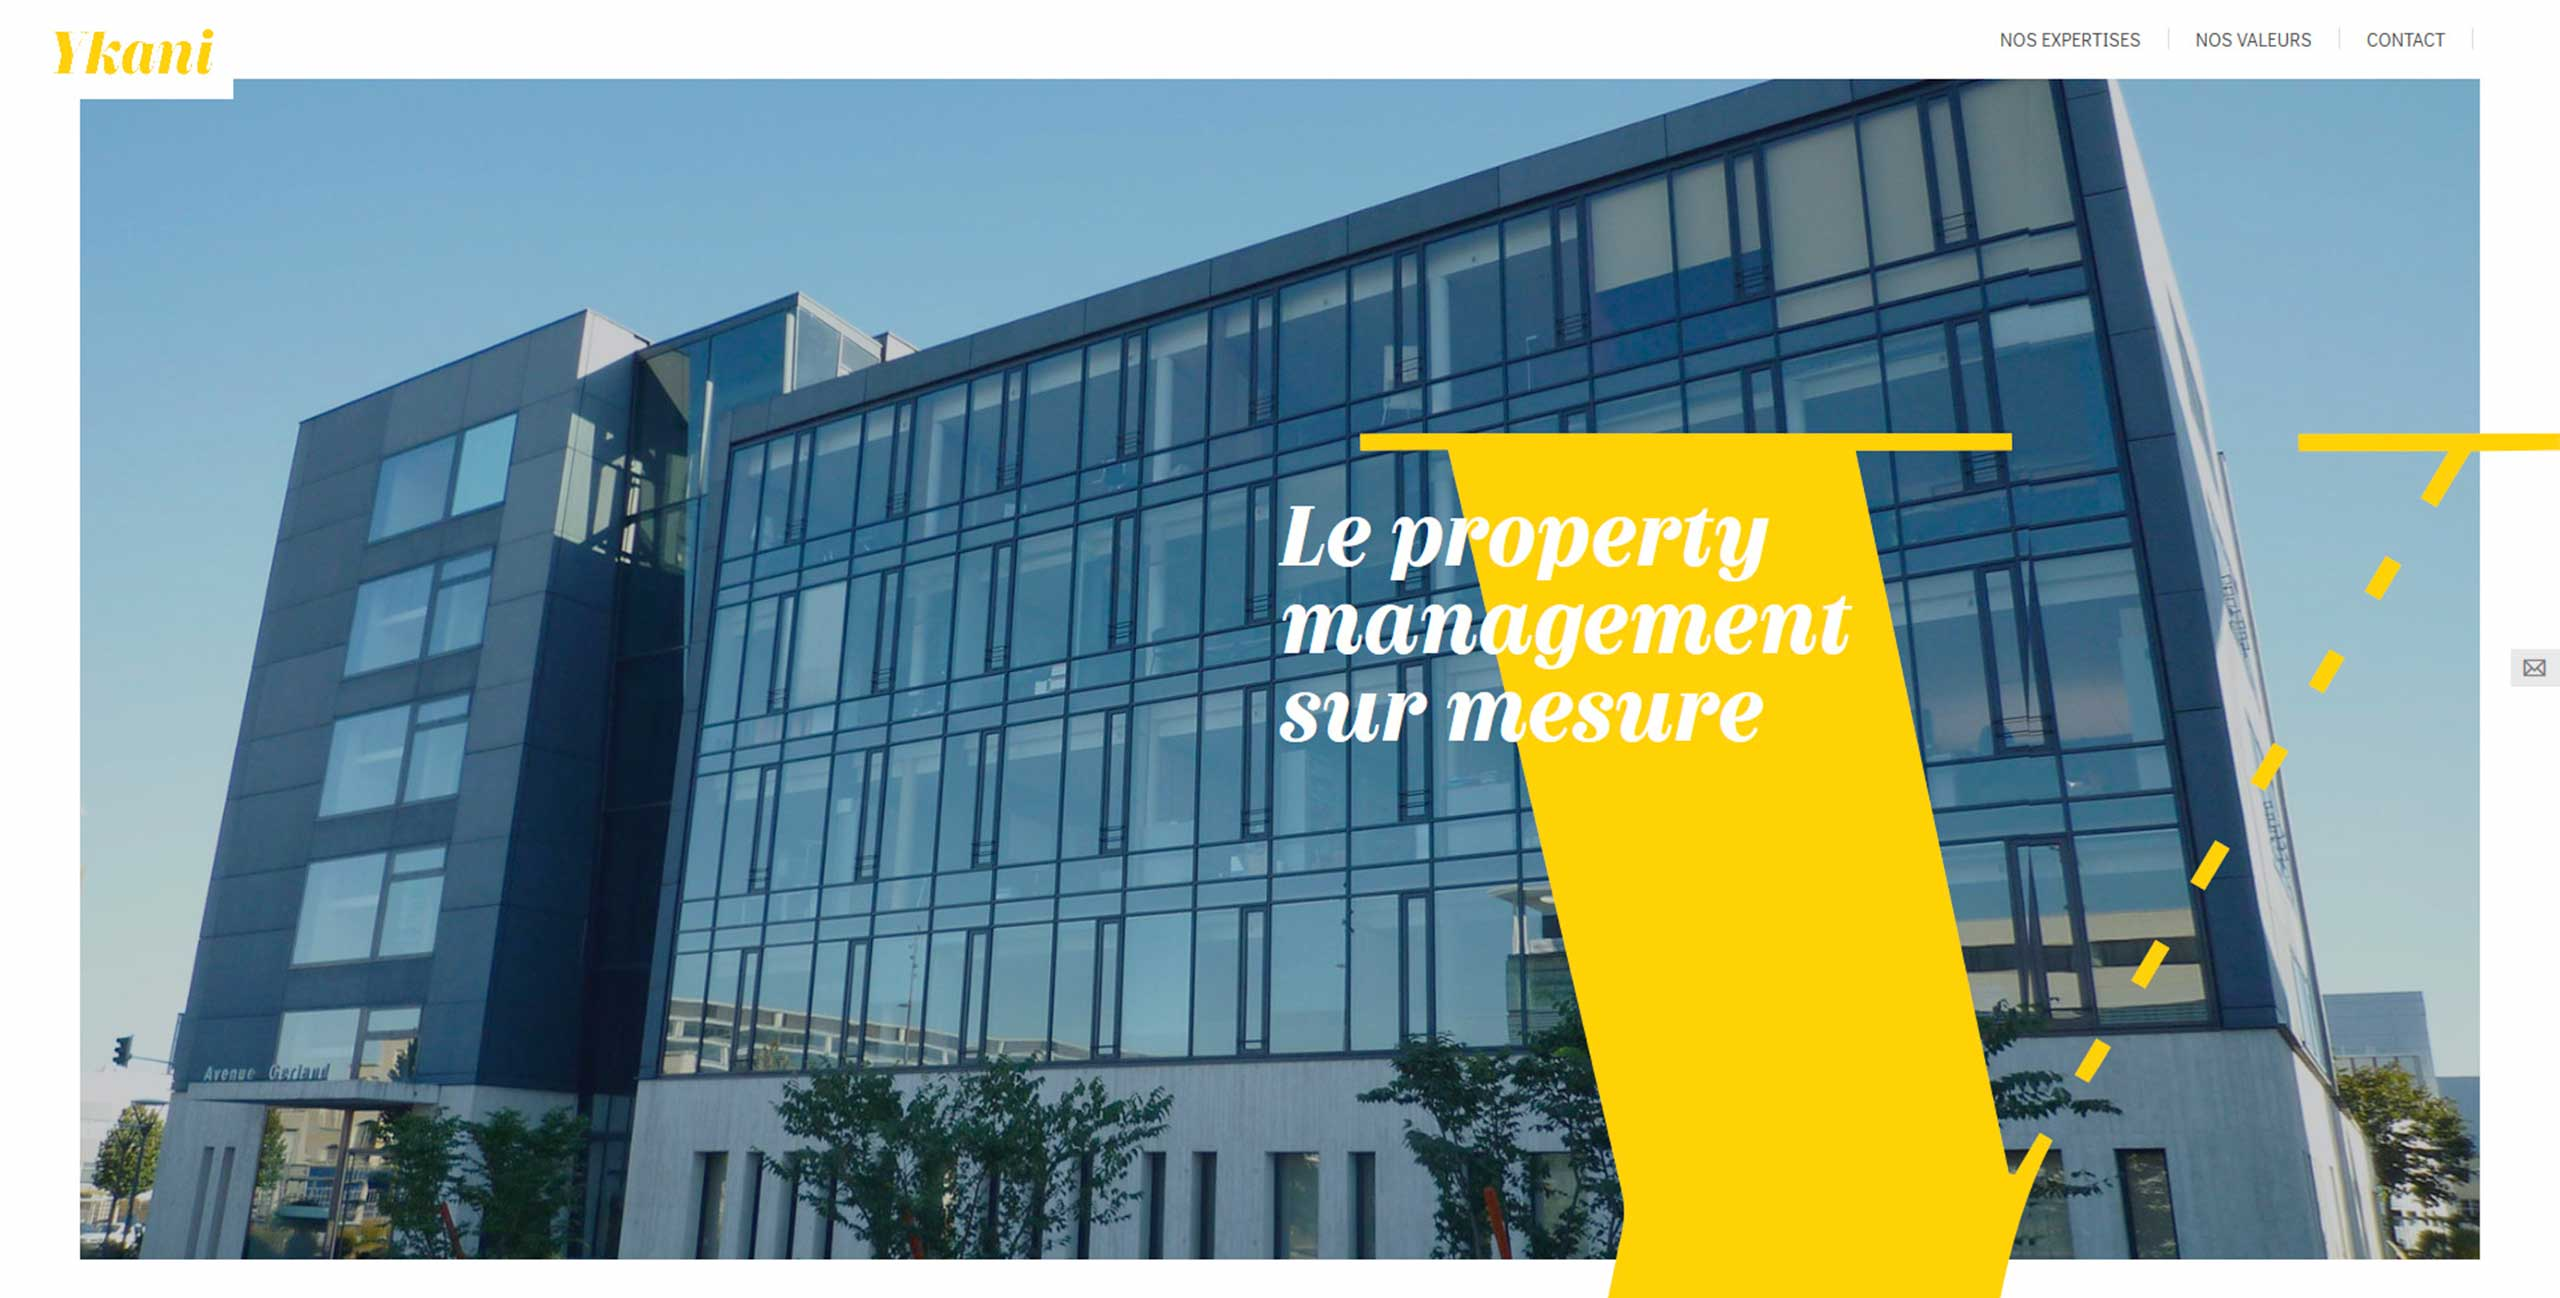 Ykani, le property management sur mesure